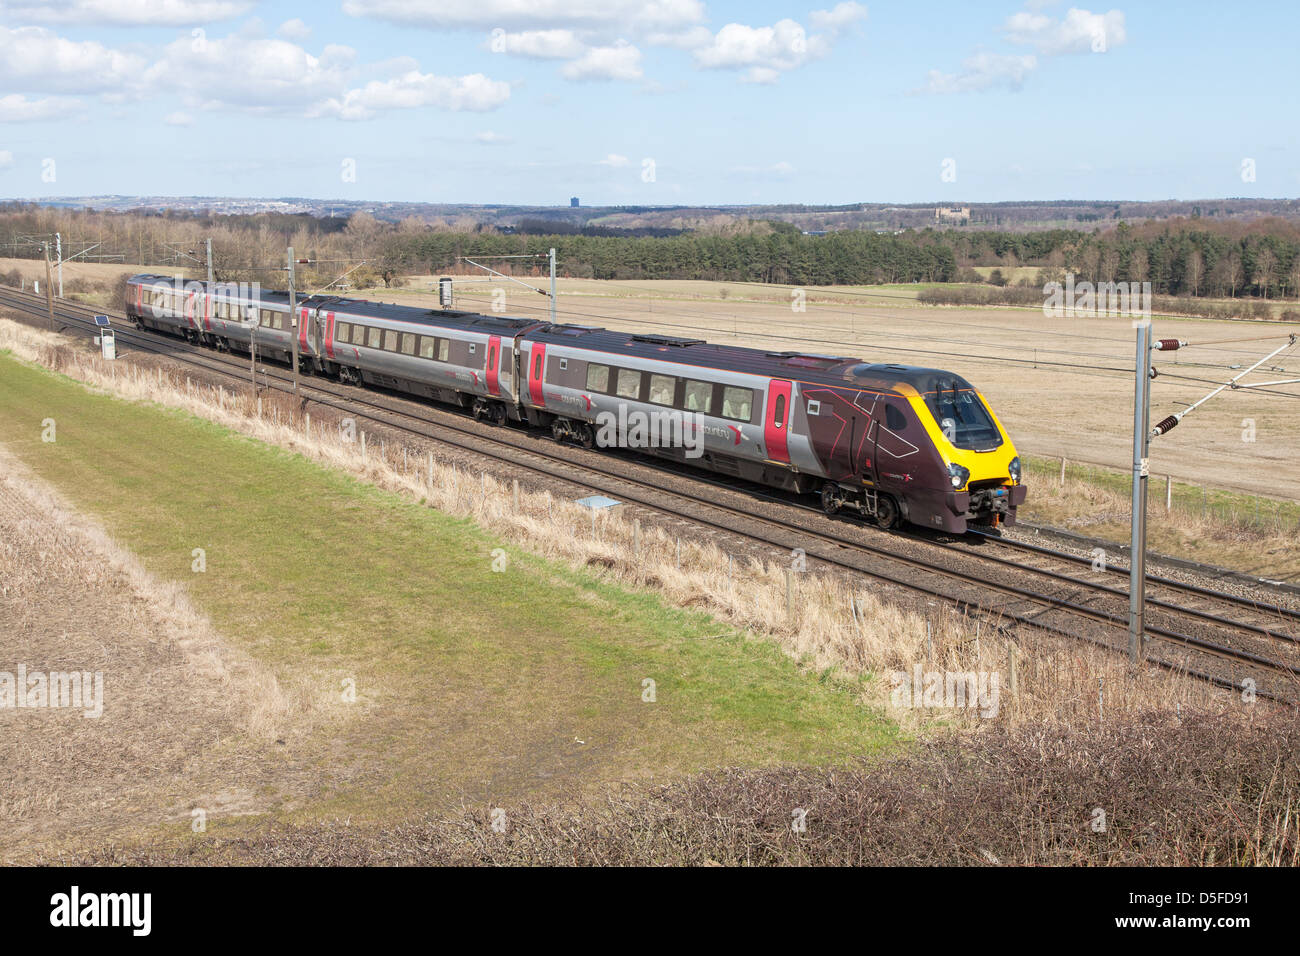 Cross Country Class 220 Voyager  train heads south on the ECML through Plawsworth north east England UK - Stock Image